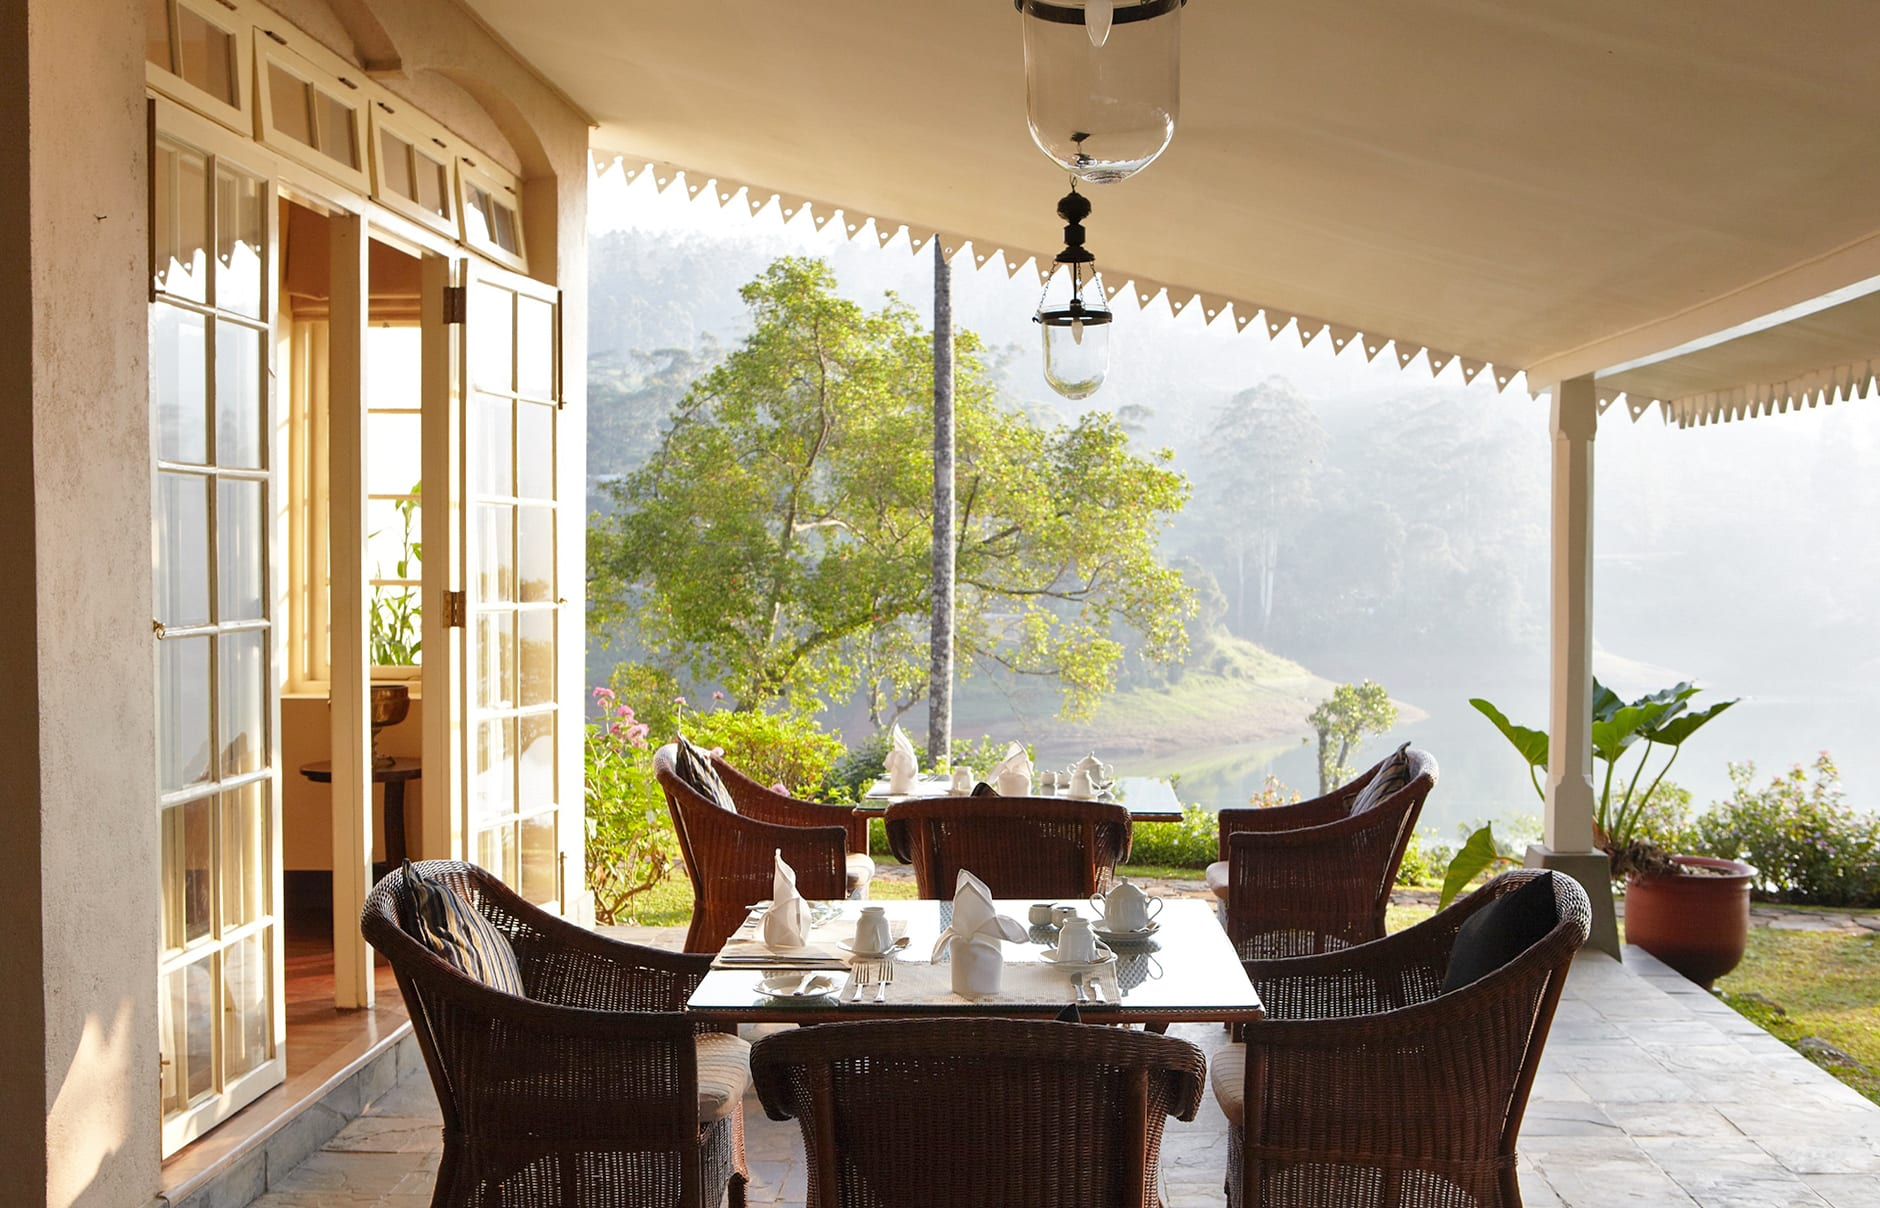 Castlereagh Bungalow. Ceylon Tea Trails, Sri Lanka. Hotel Review by TravelPlusStyle. Photo © Resplendent Ceylon